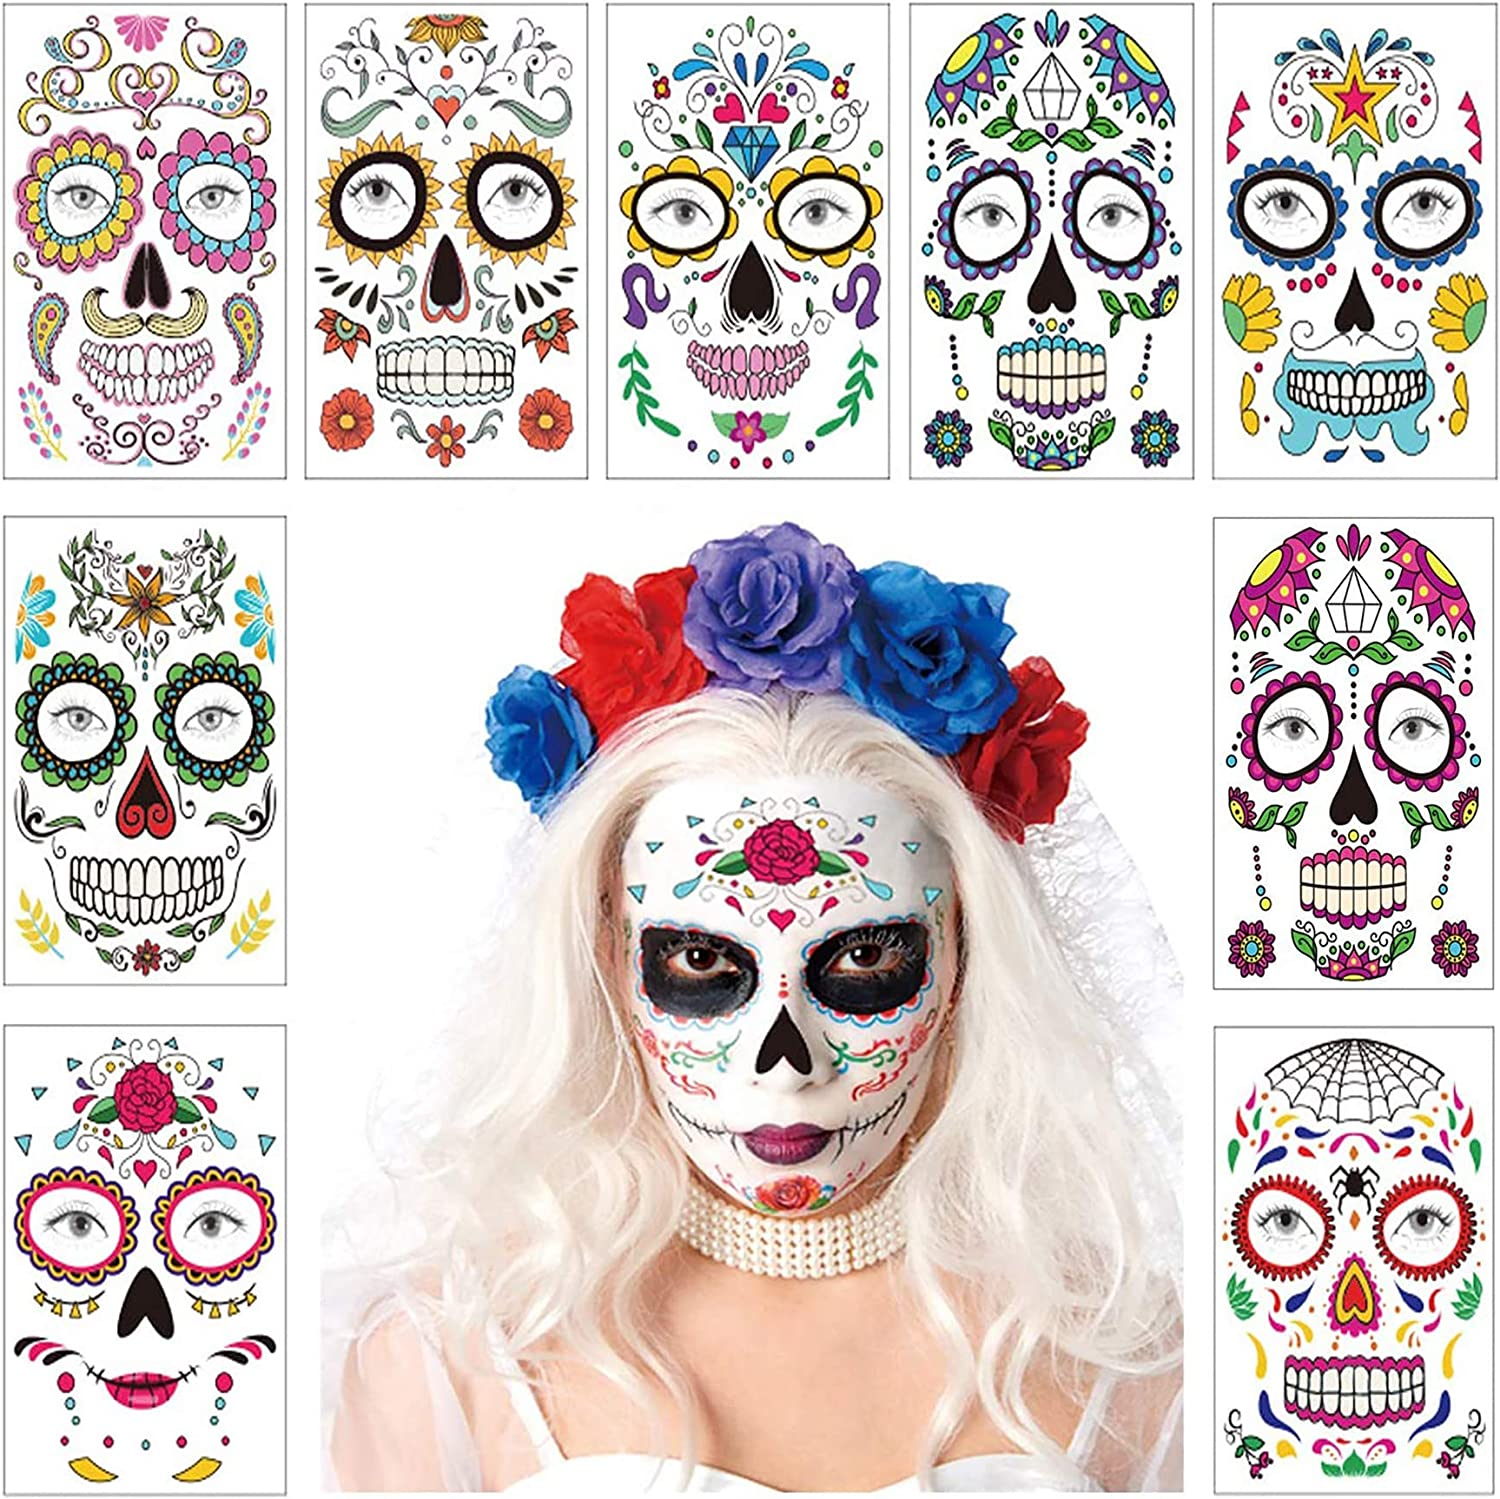 9 Sheets Halloween Temporary Face Tattoo Sticker Day of The Dead Skull Roses Sugar Design Mask Floral Festival Skeleton Decor Waterproof Scar Bleeding Garland Party Masquerade Cosplay Favor Supplies